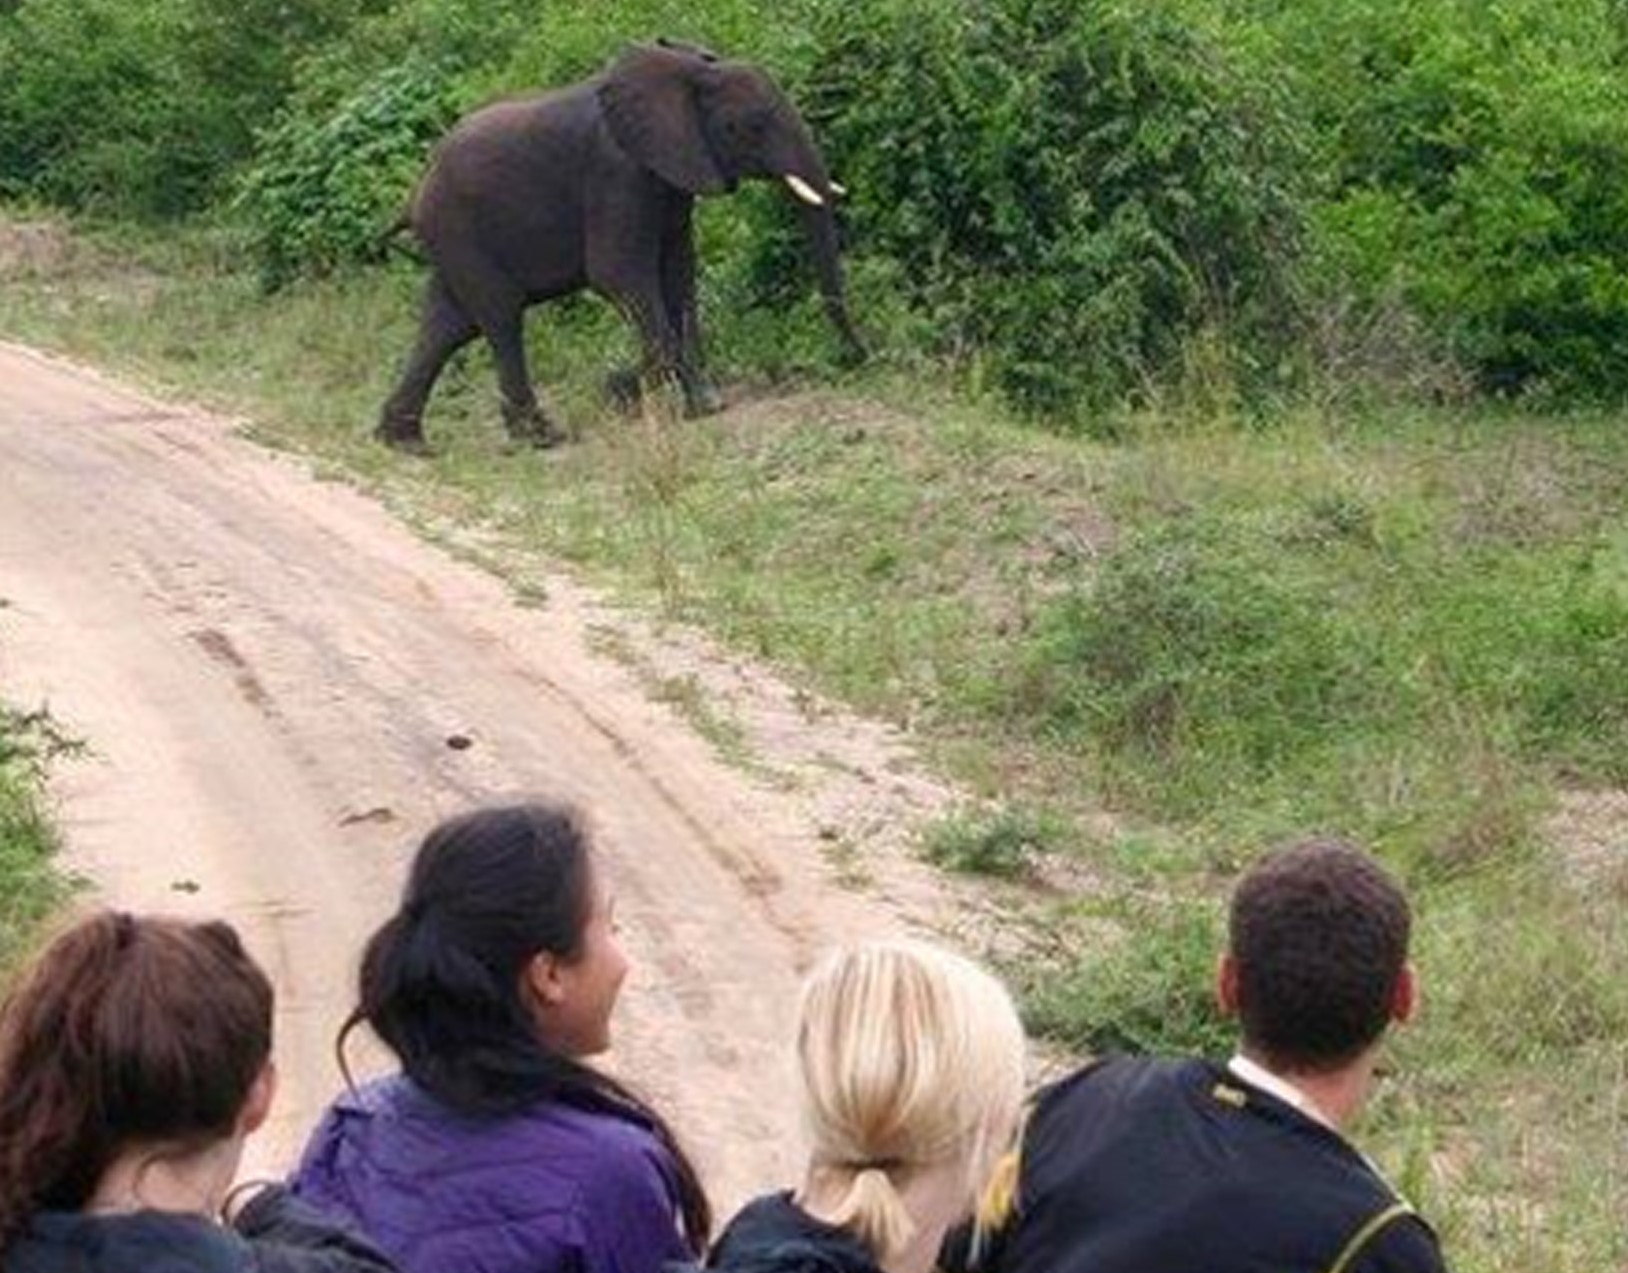 Elaine Sohng watching an elephant in Uganda